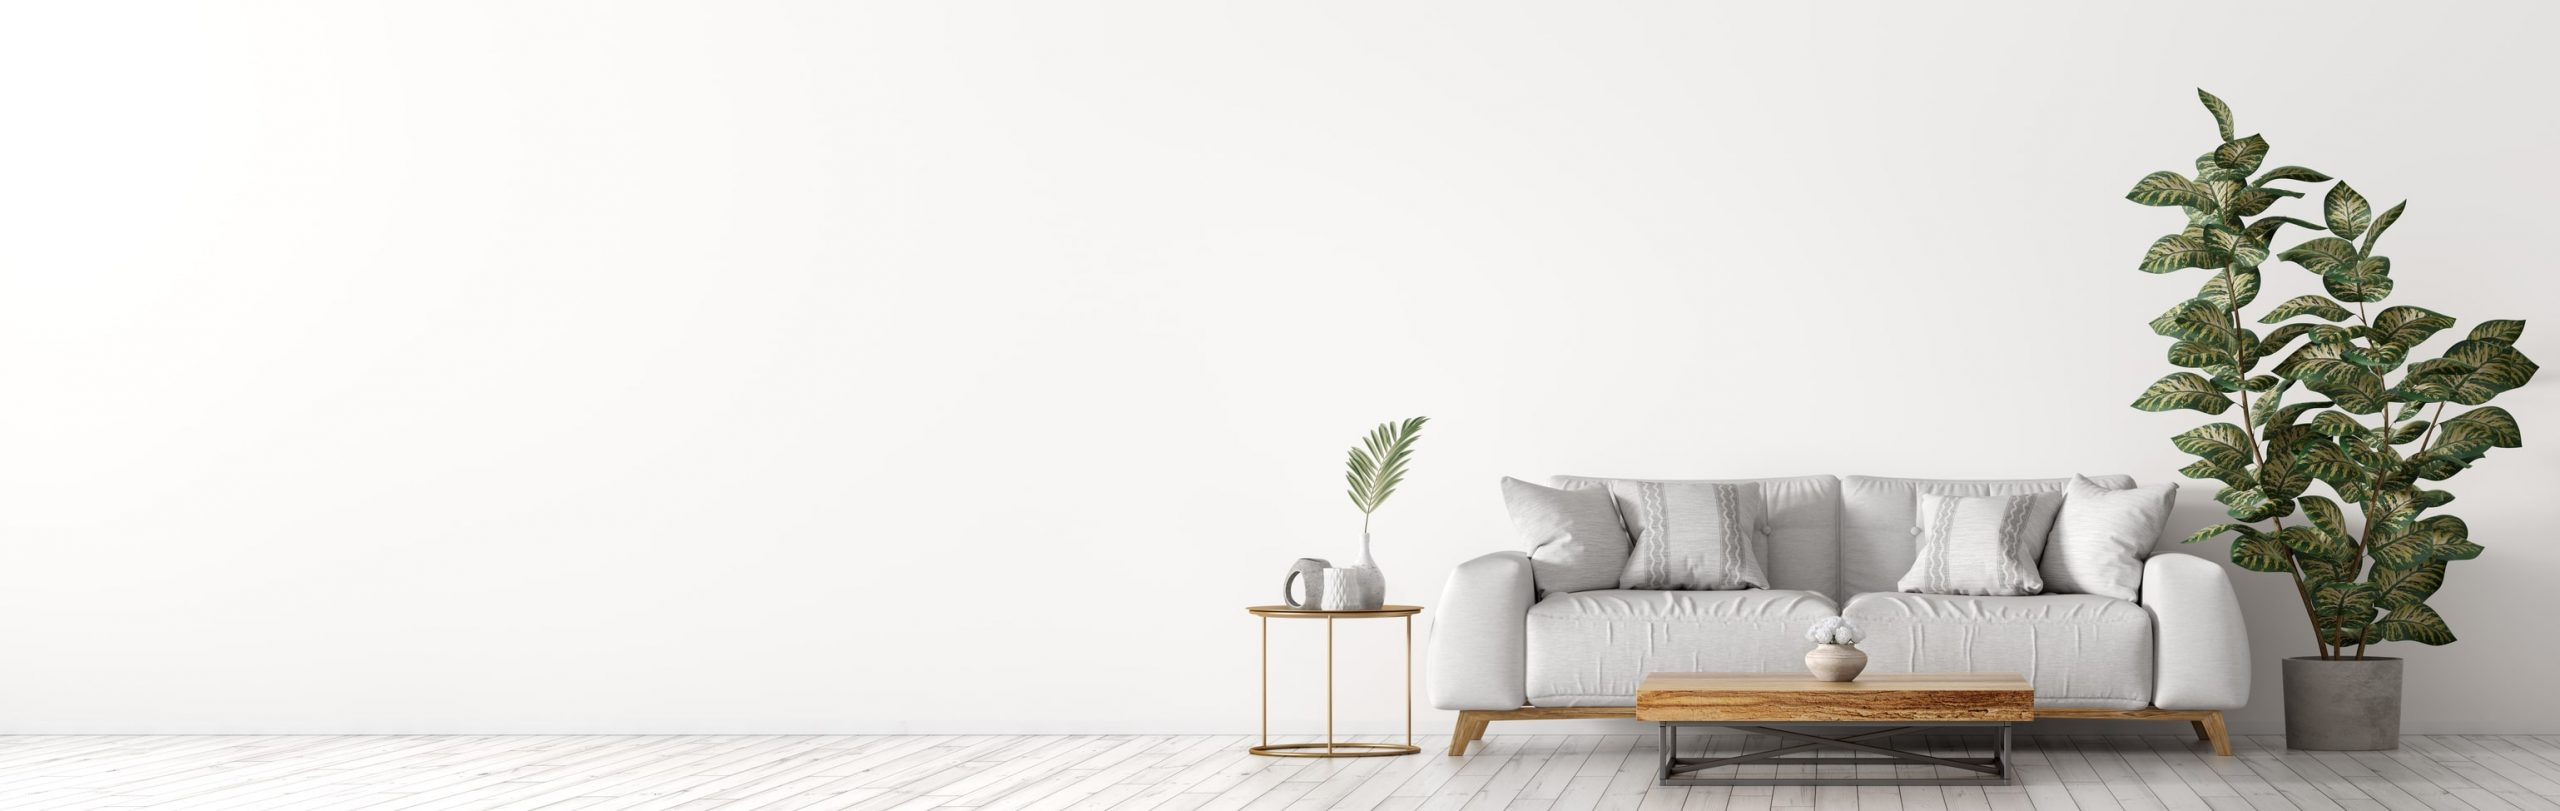 Home with wood floors and white couch